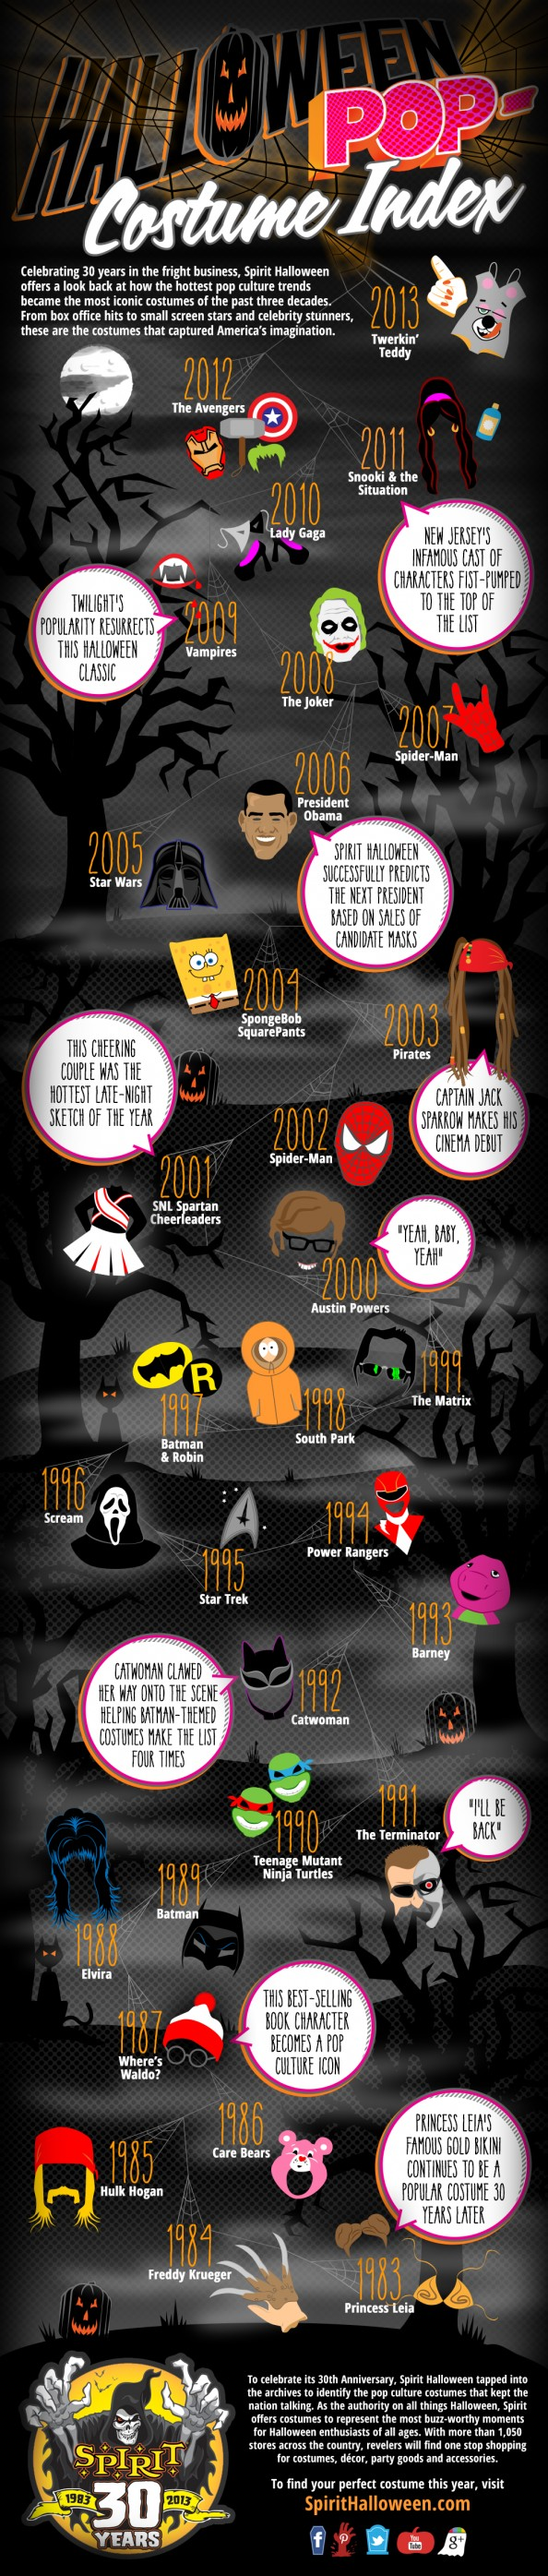 Halloween Pop-Costume Index